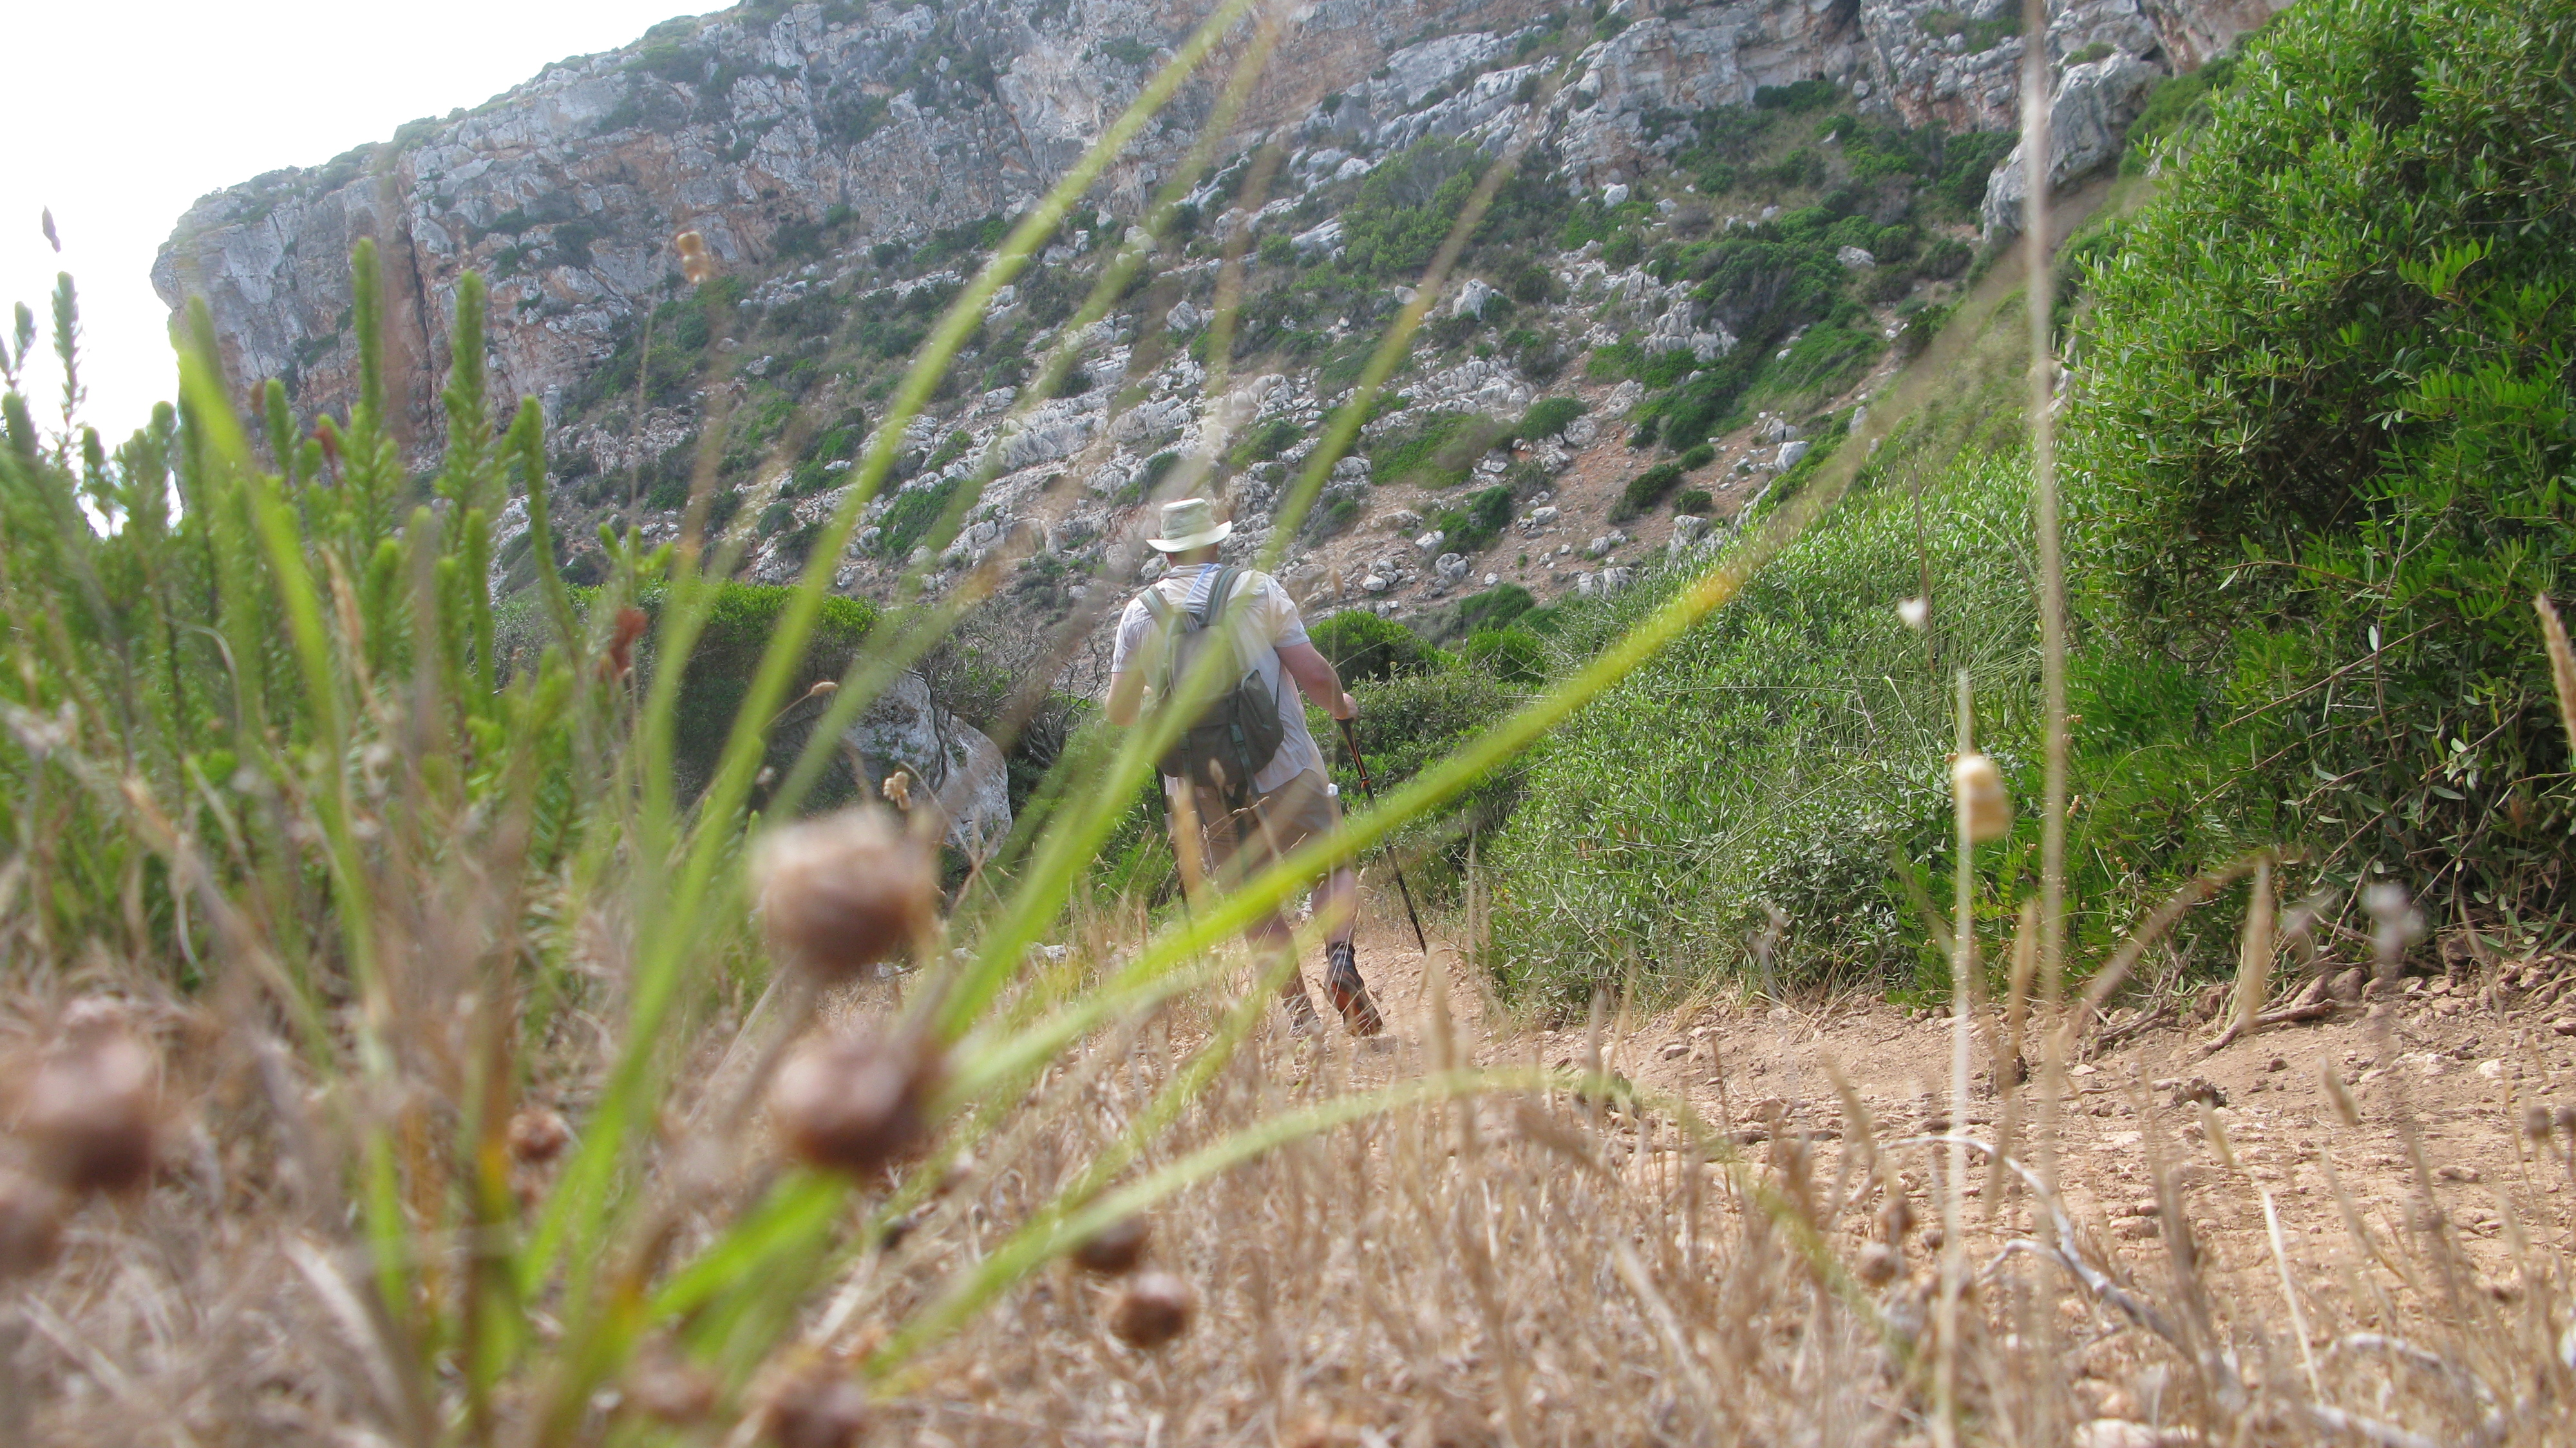 Three Points of the Compass visited Menorca in July, it was mostly hot and dry, as expected. However there is much green vegetation on the dry soils. It gets much drier and browner as the year progresses